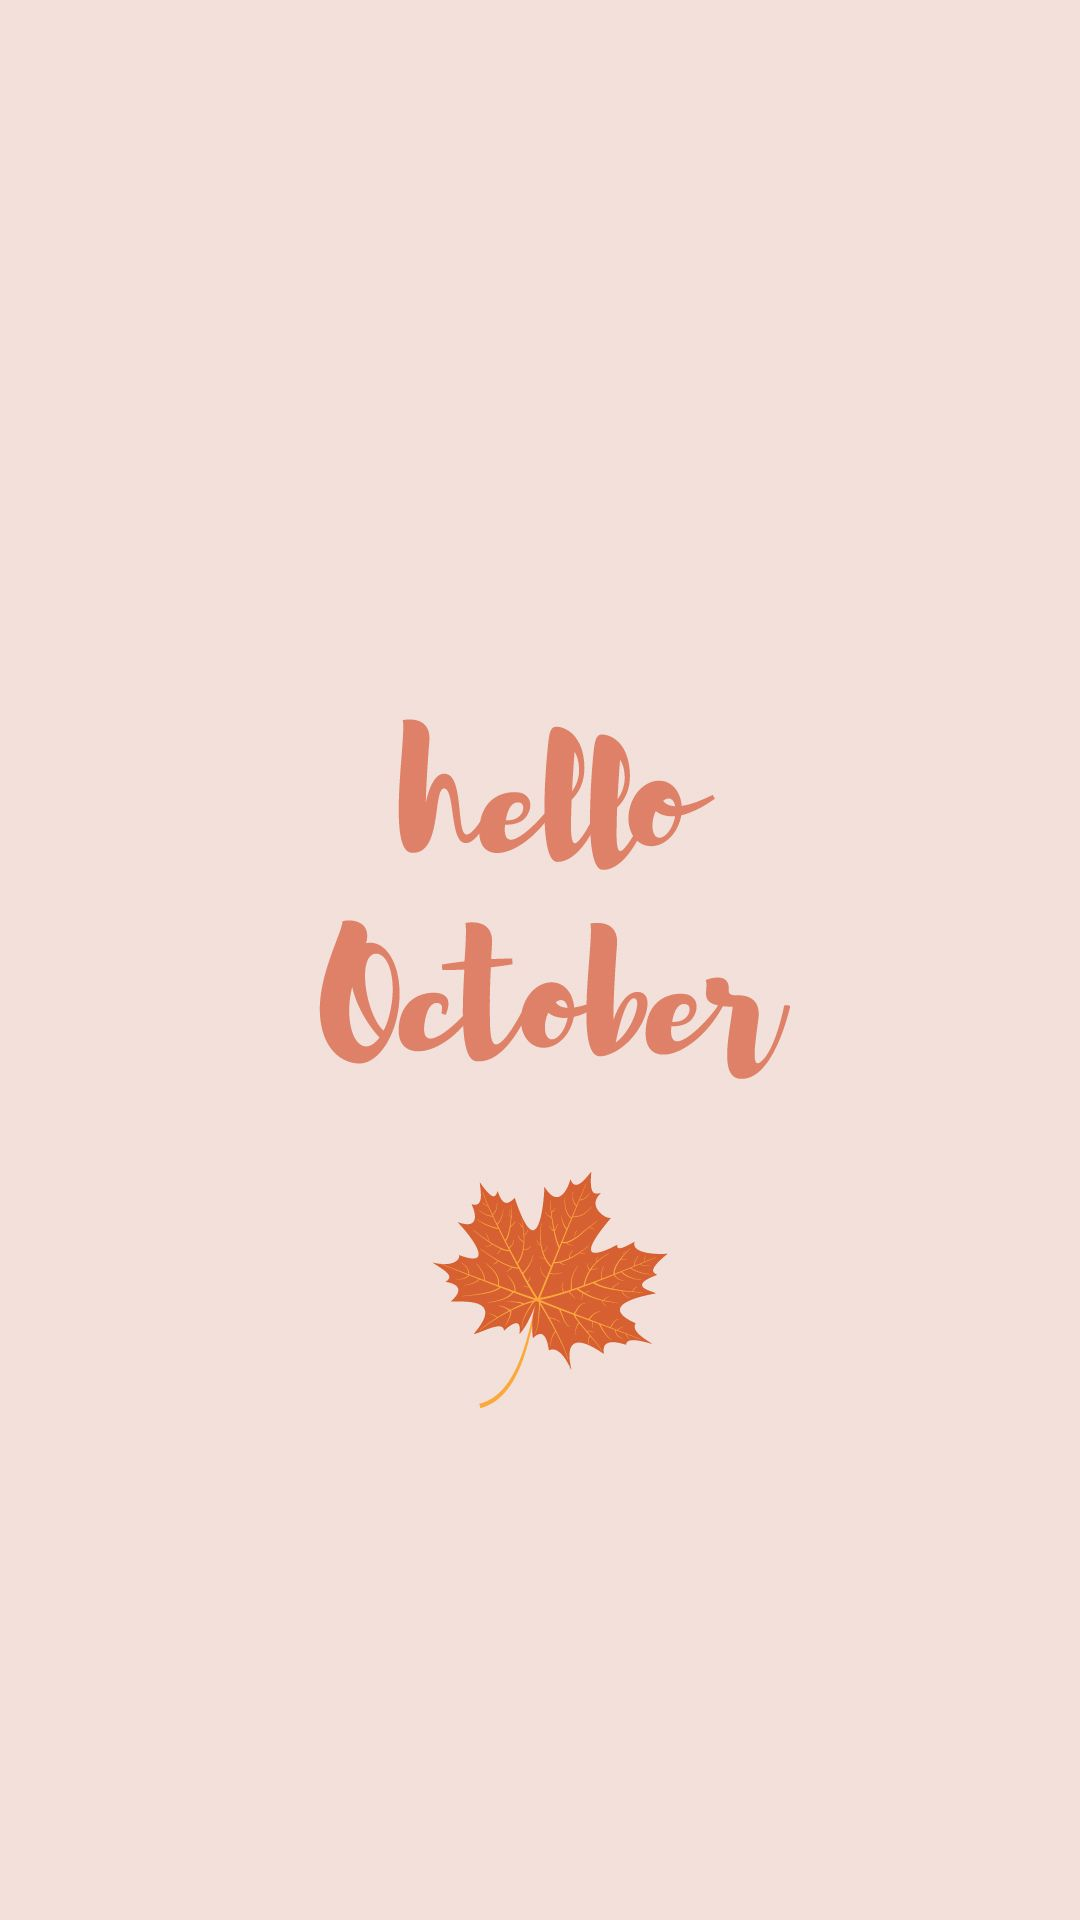 October Aesthetic Wallpapers Wallpaper Cave